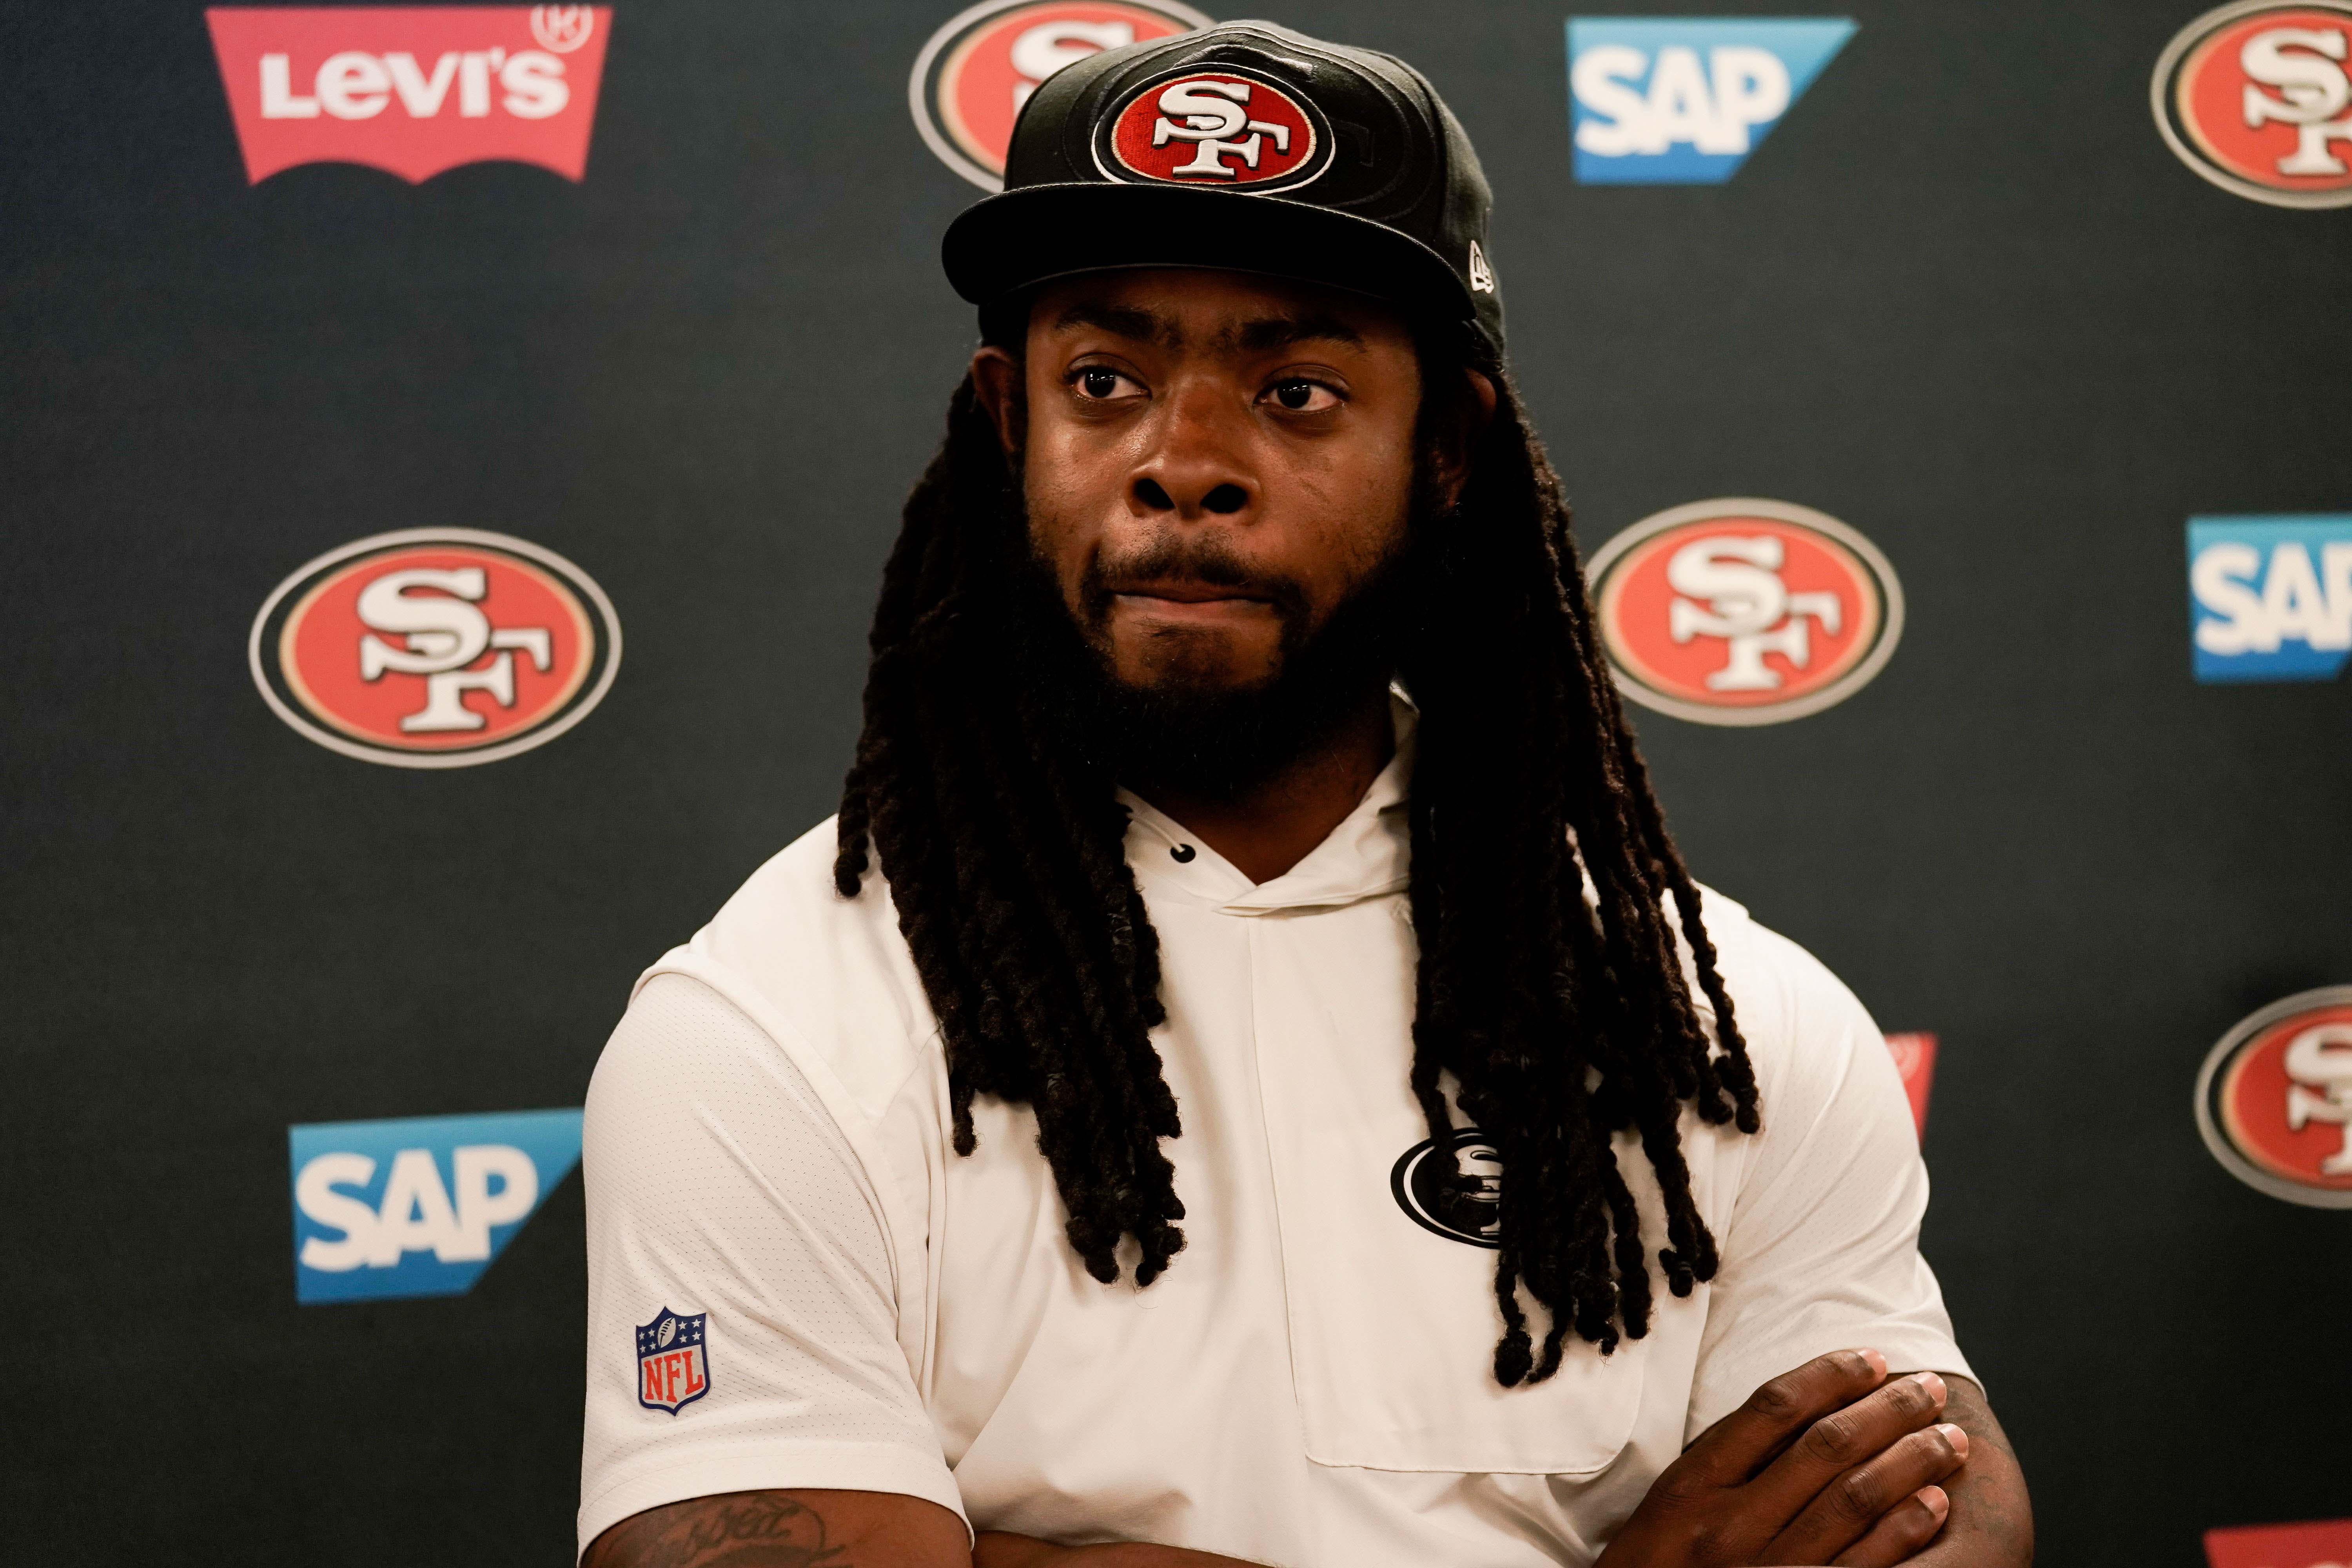 After lessons from Kobe Bryant, Richard Sherman cleared and ready to return from injury